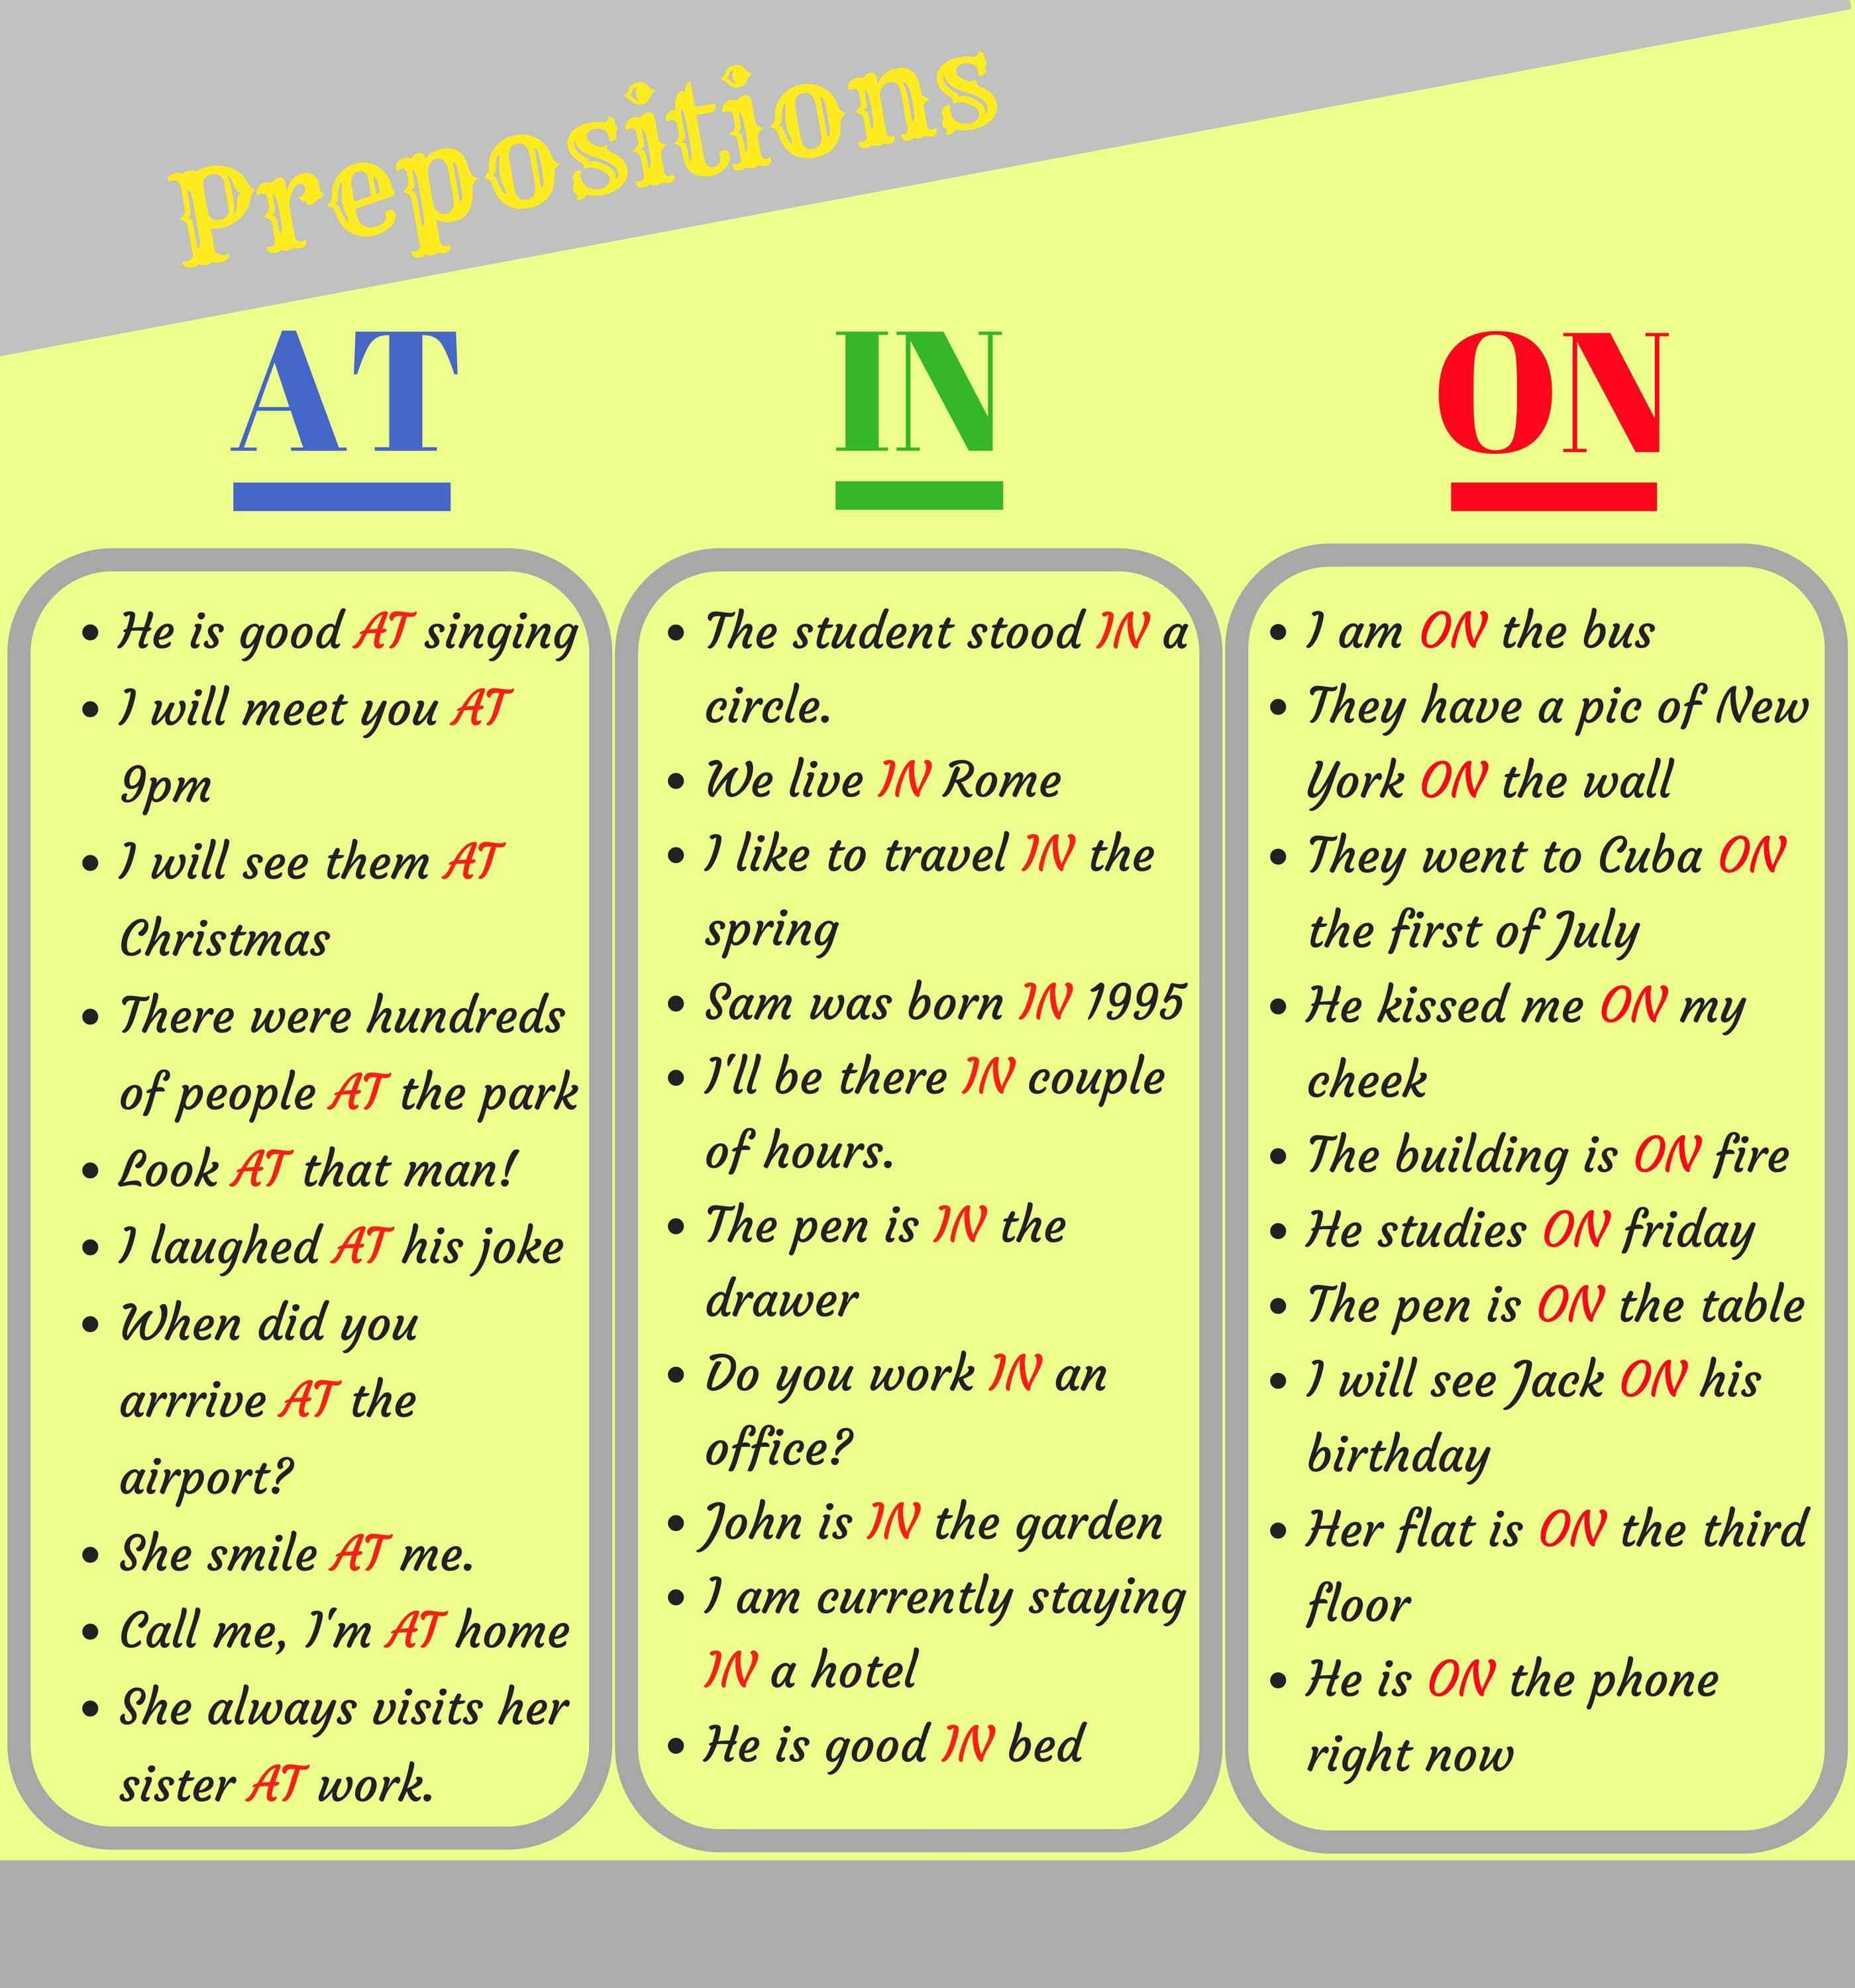 How To Use Prepositions Time And Place At